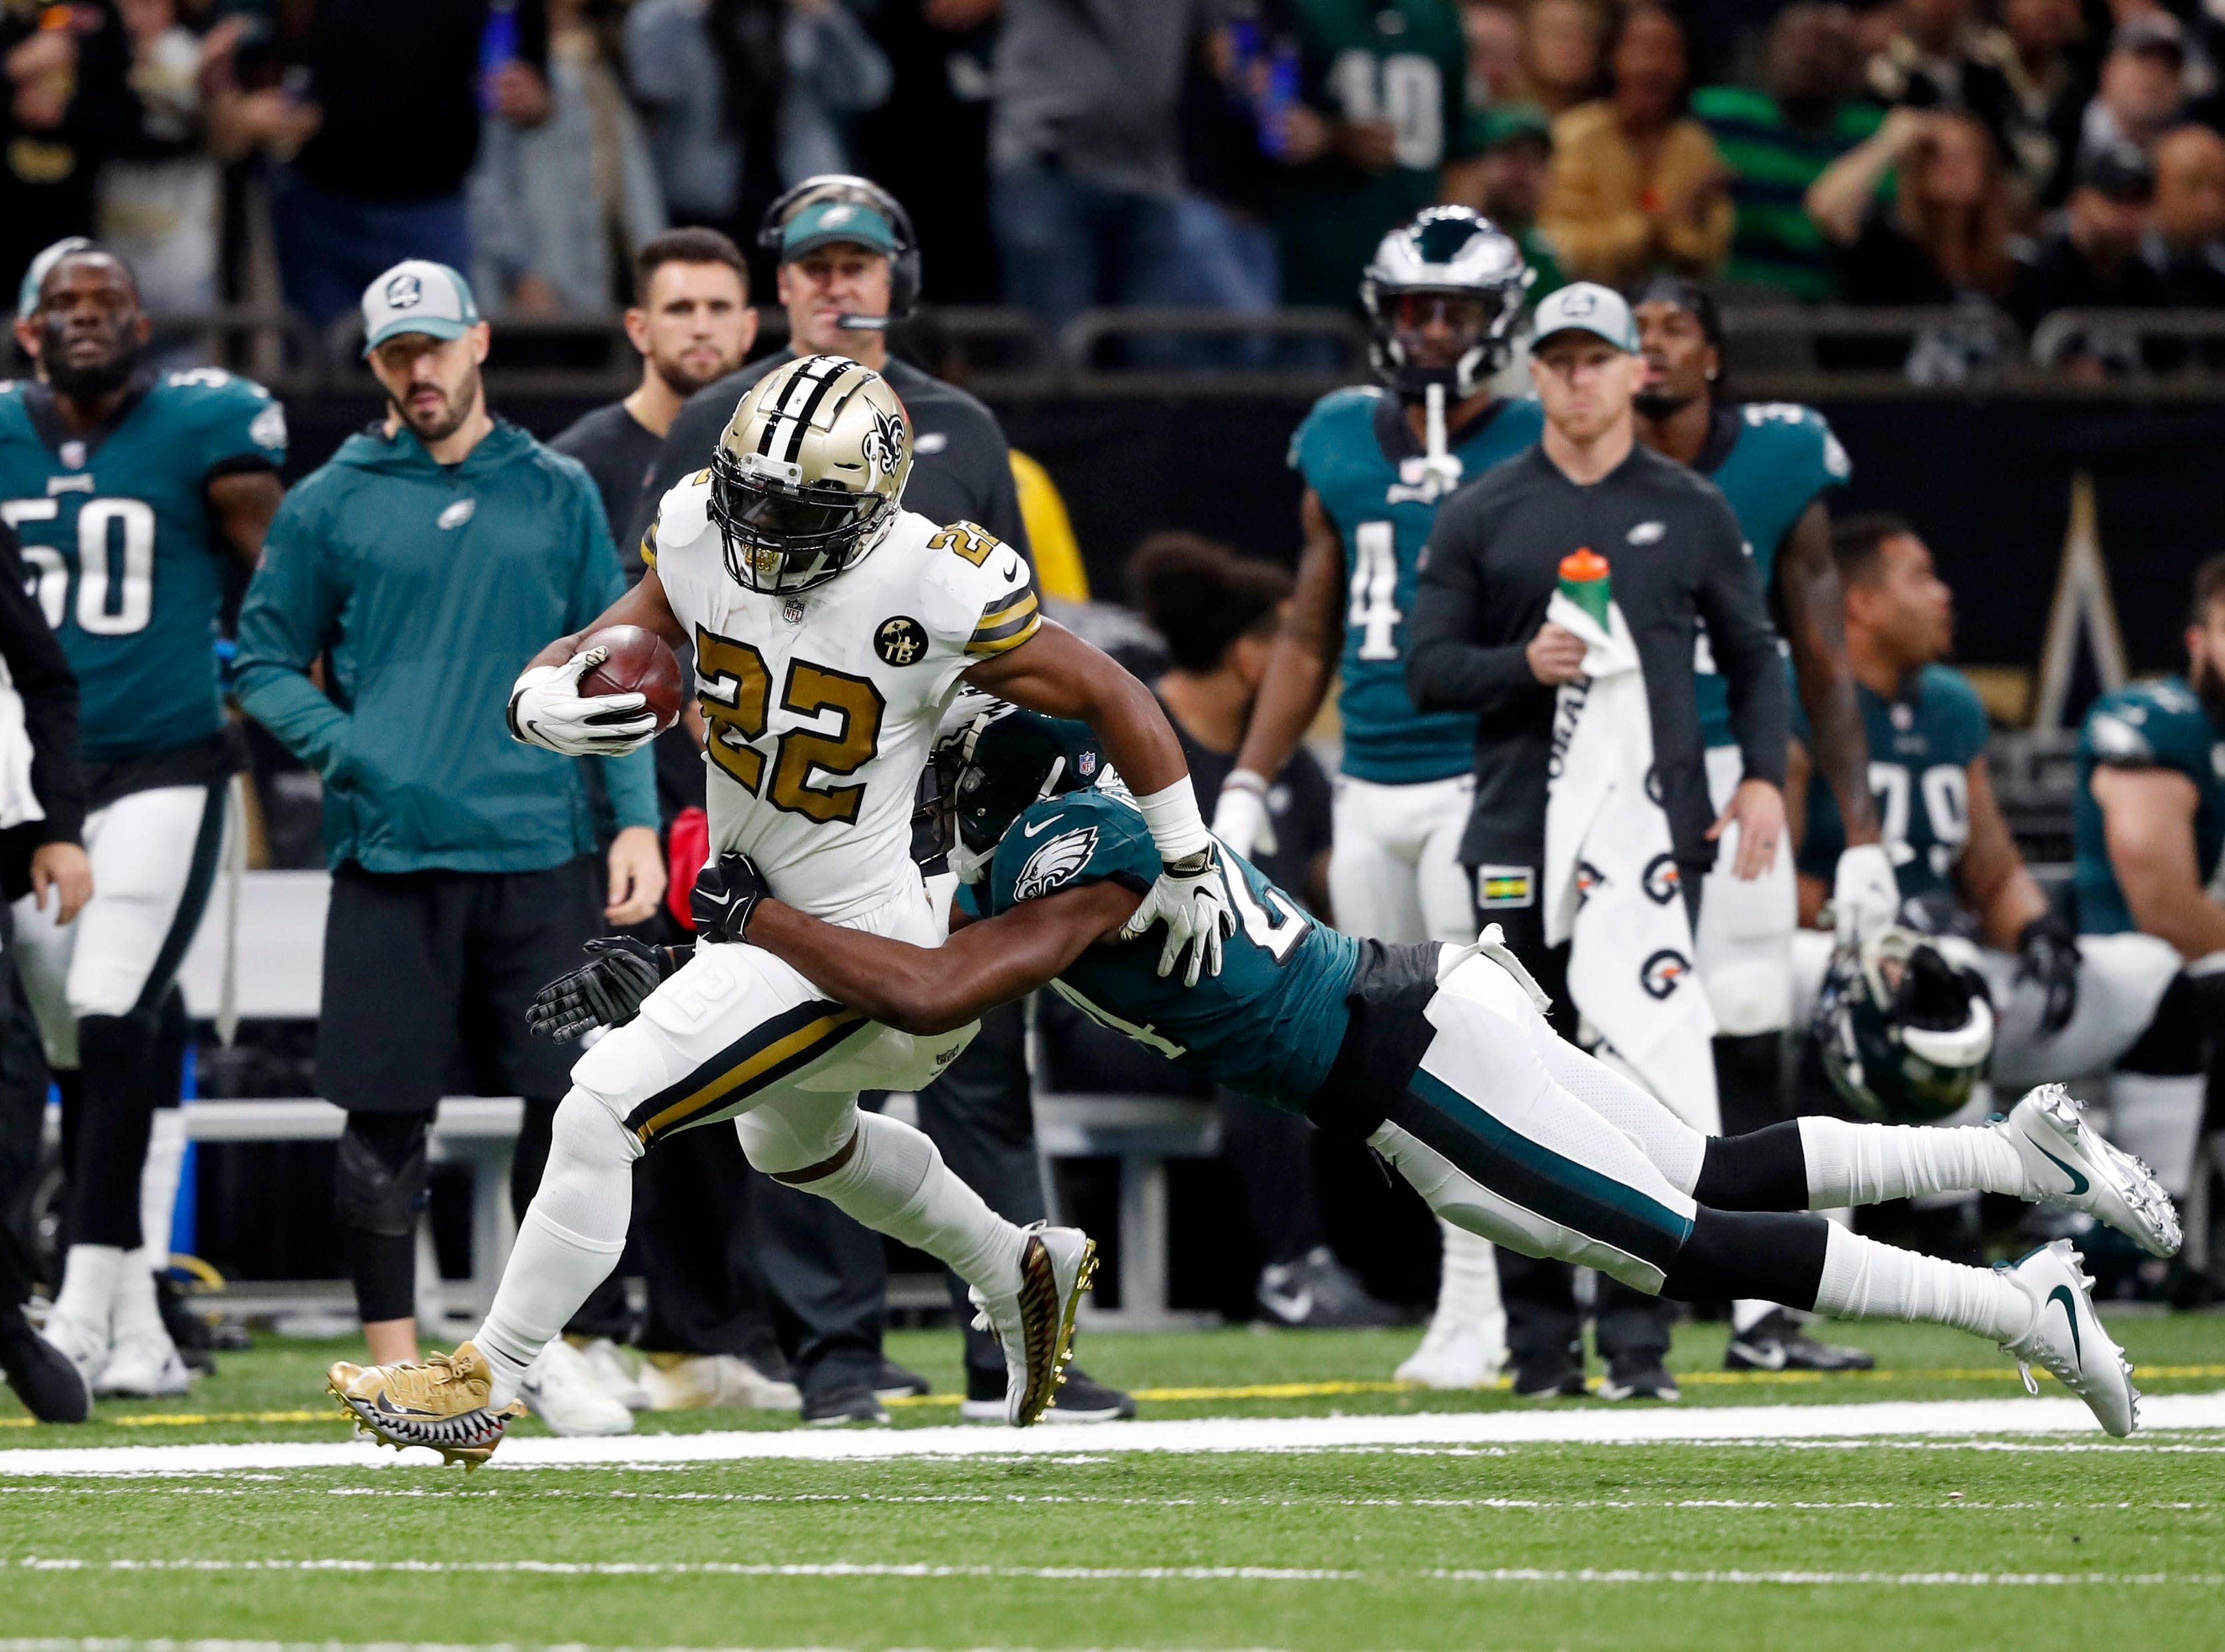 New Orleans Saints running back Mark Ingram (22) carries as Philadelphia Eagles free safety Corey Graham (24) tackles in the first half of an NFL football game in New Orleans, Sunday, Nov. 18, 2018. (AP Photo/Gerald Herbert)